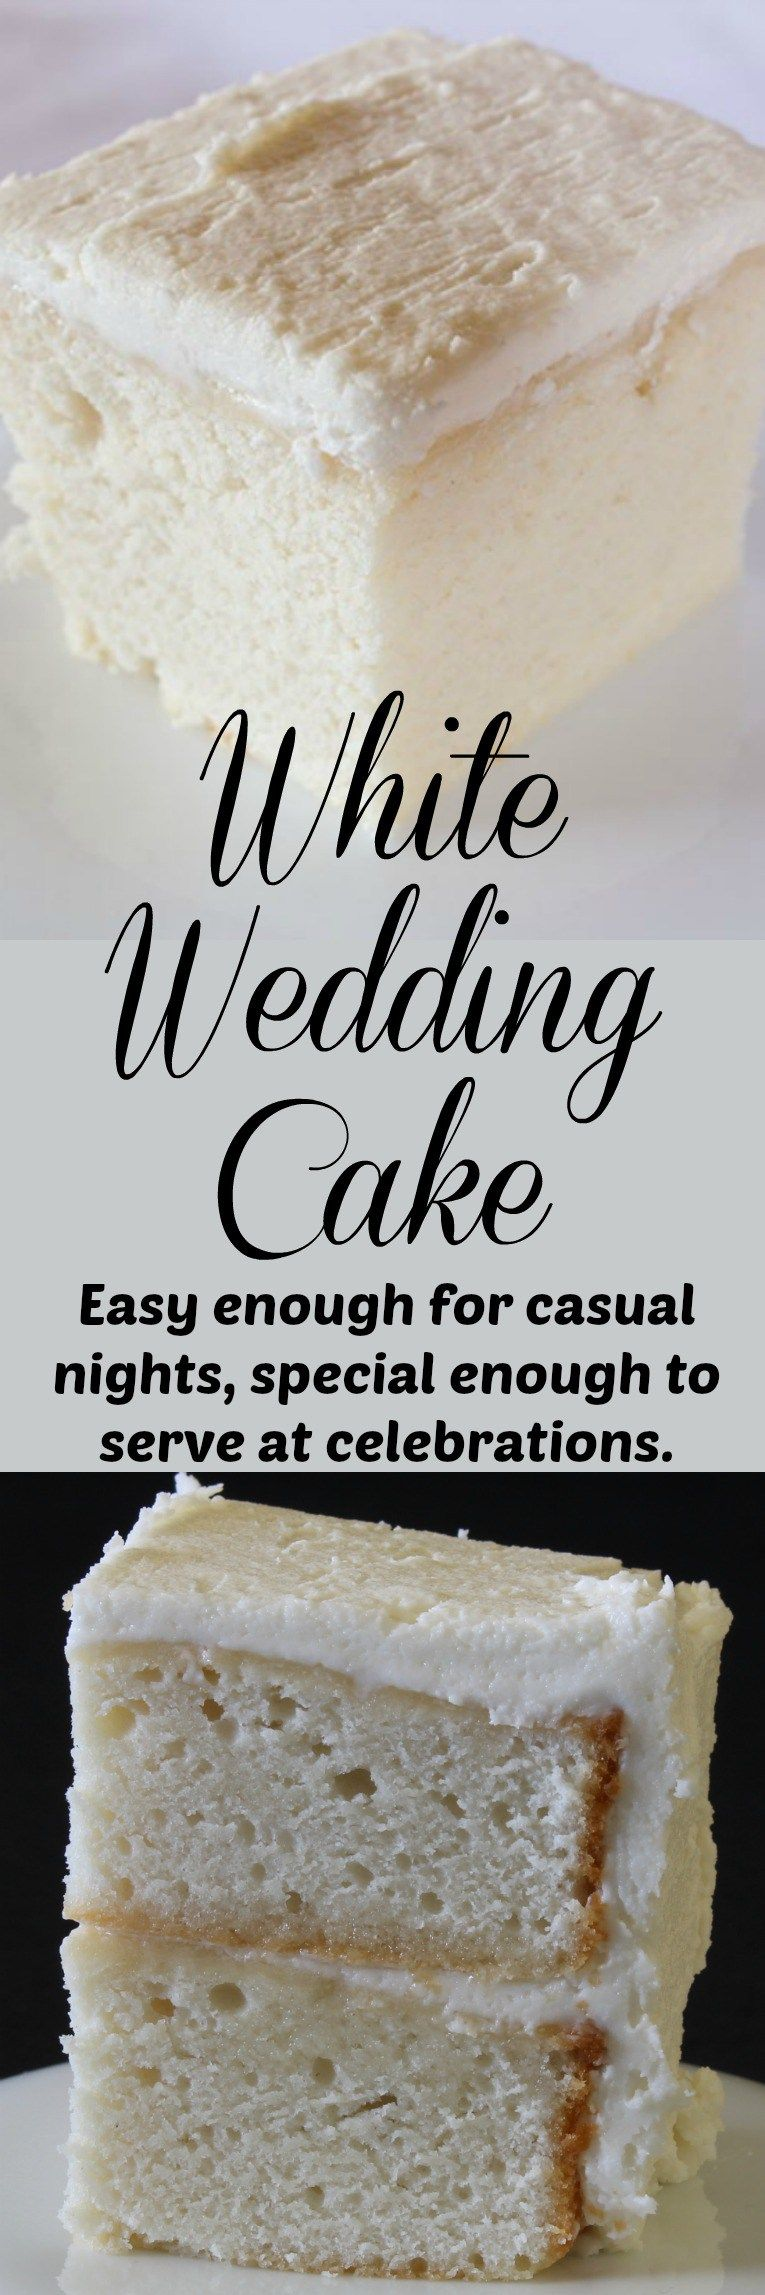 Delicious White Cake With Buttercream Icing Tastes Like Old Fashioned Wedding